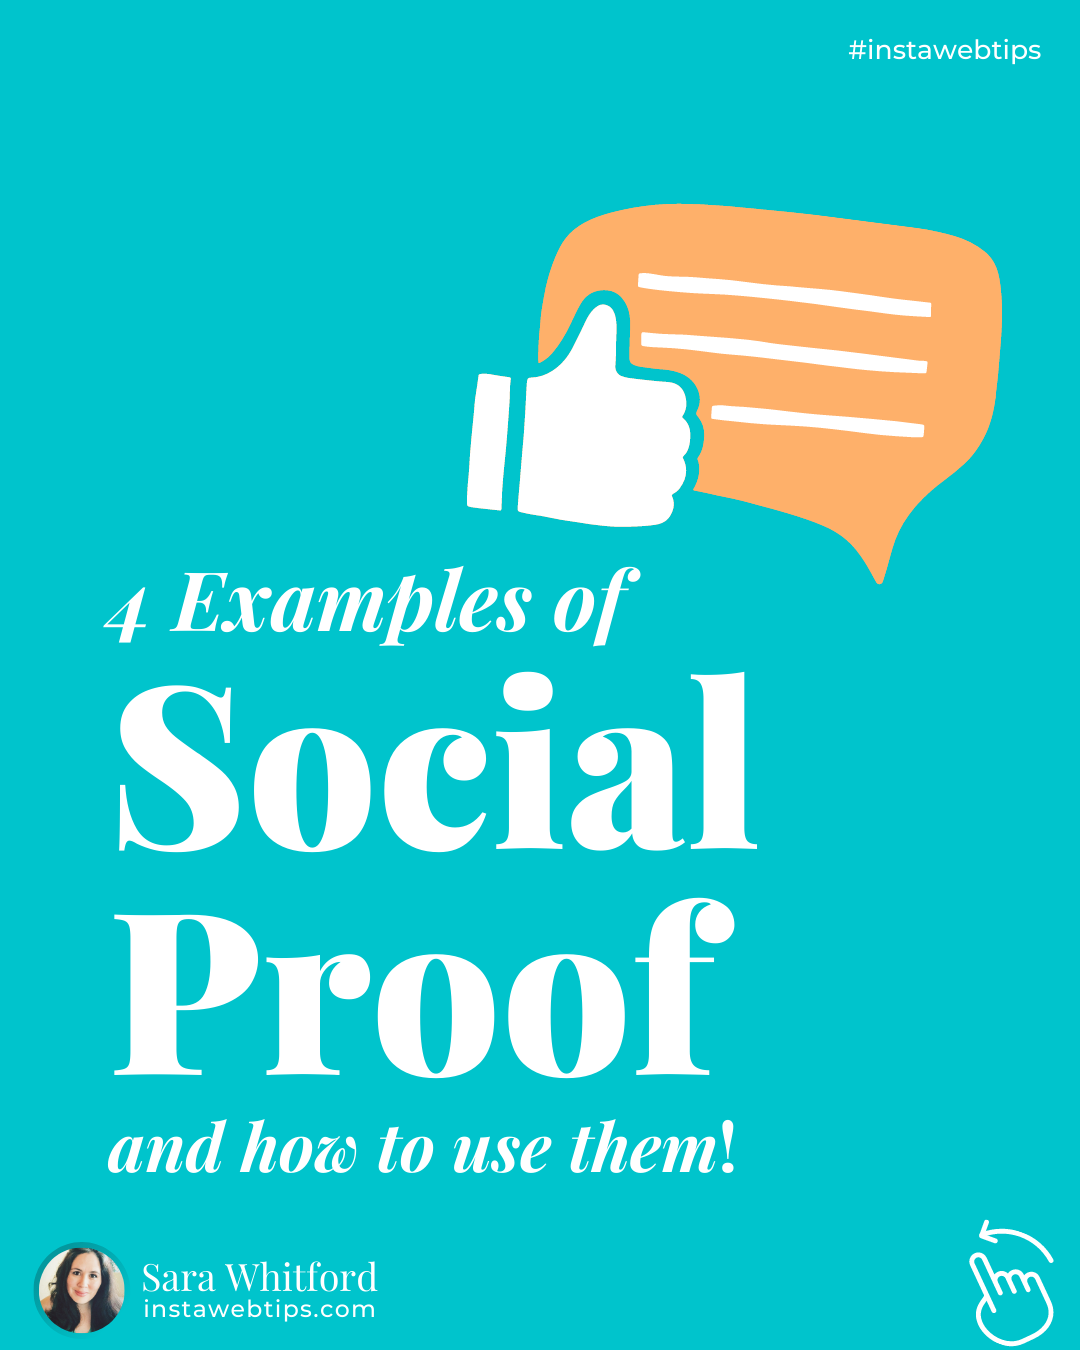 4 Examples of Social Proof and how to use them